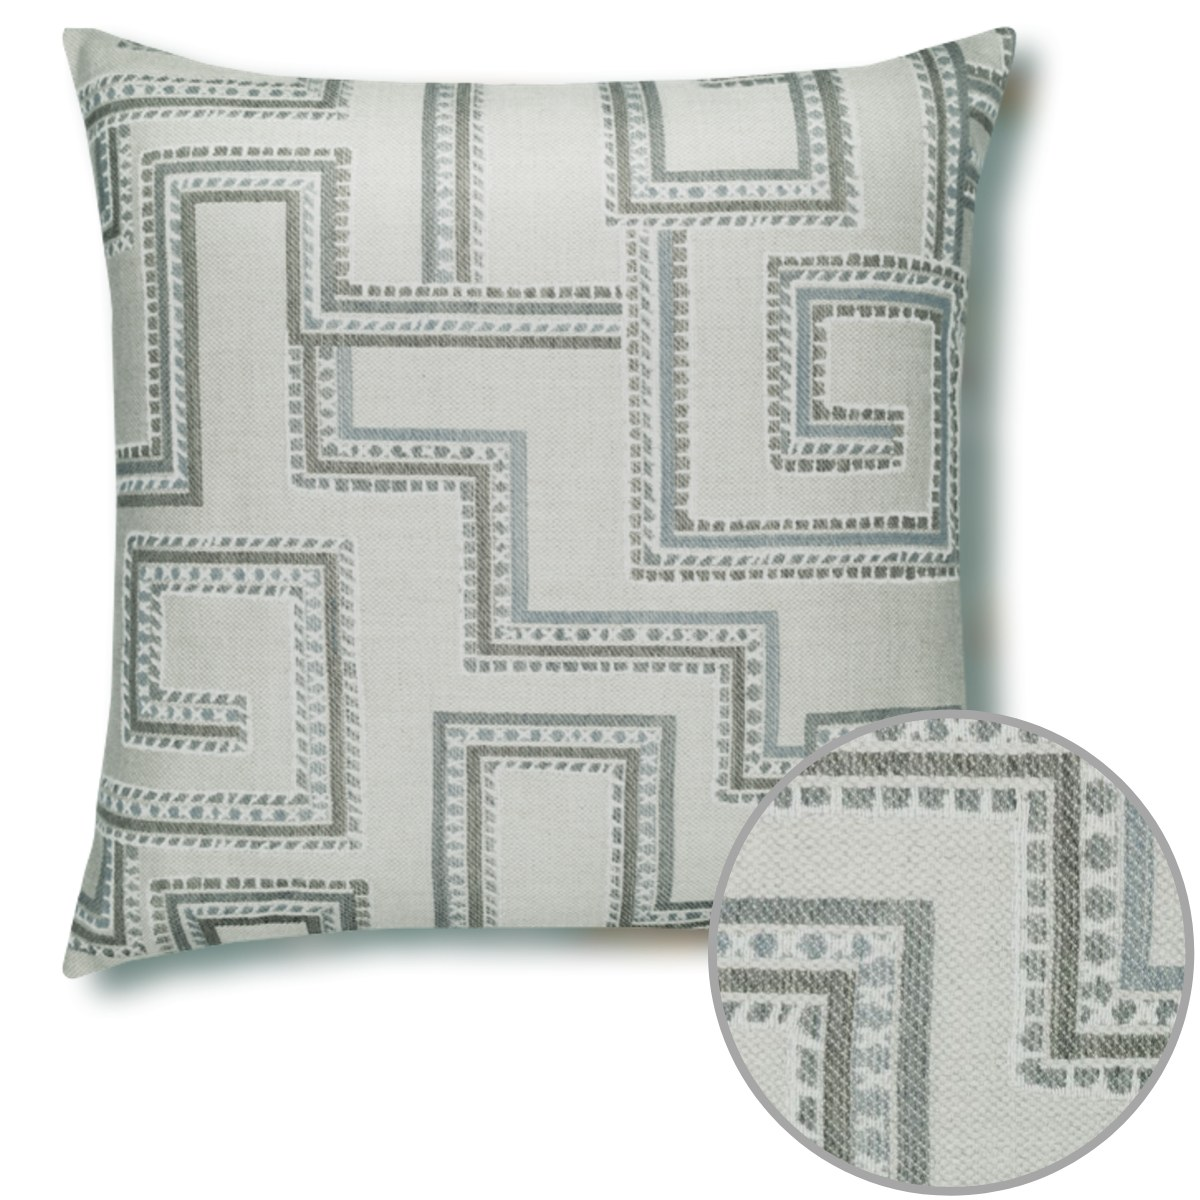 maze-pillow detail